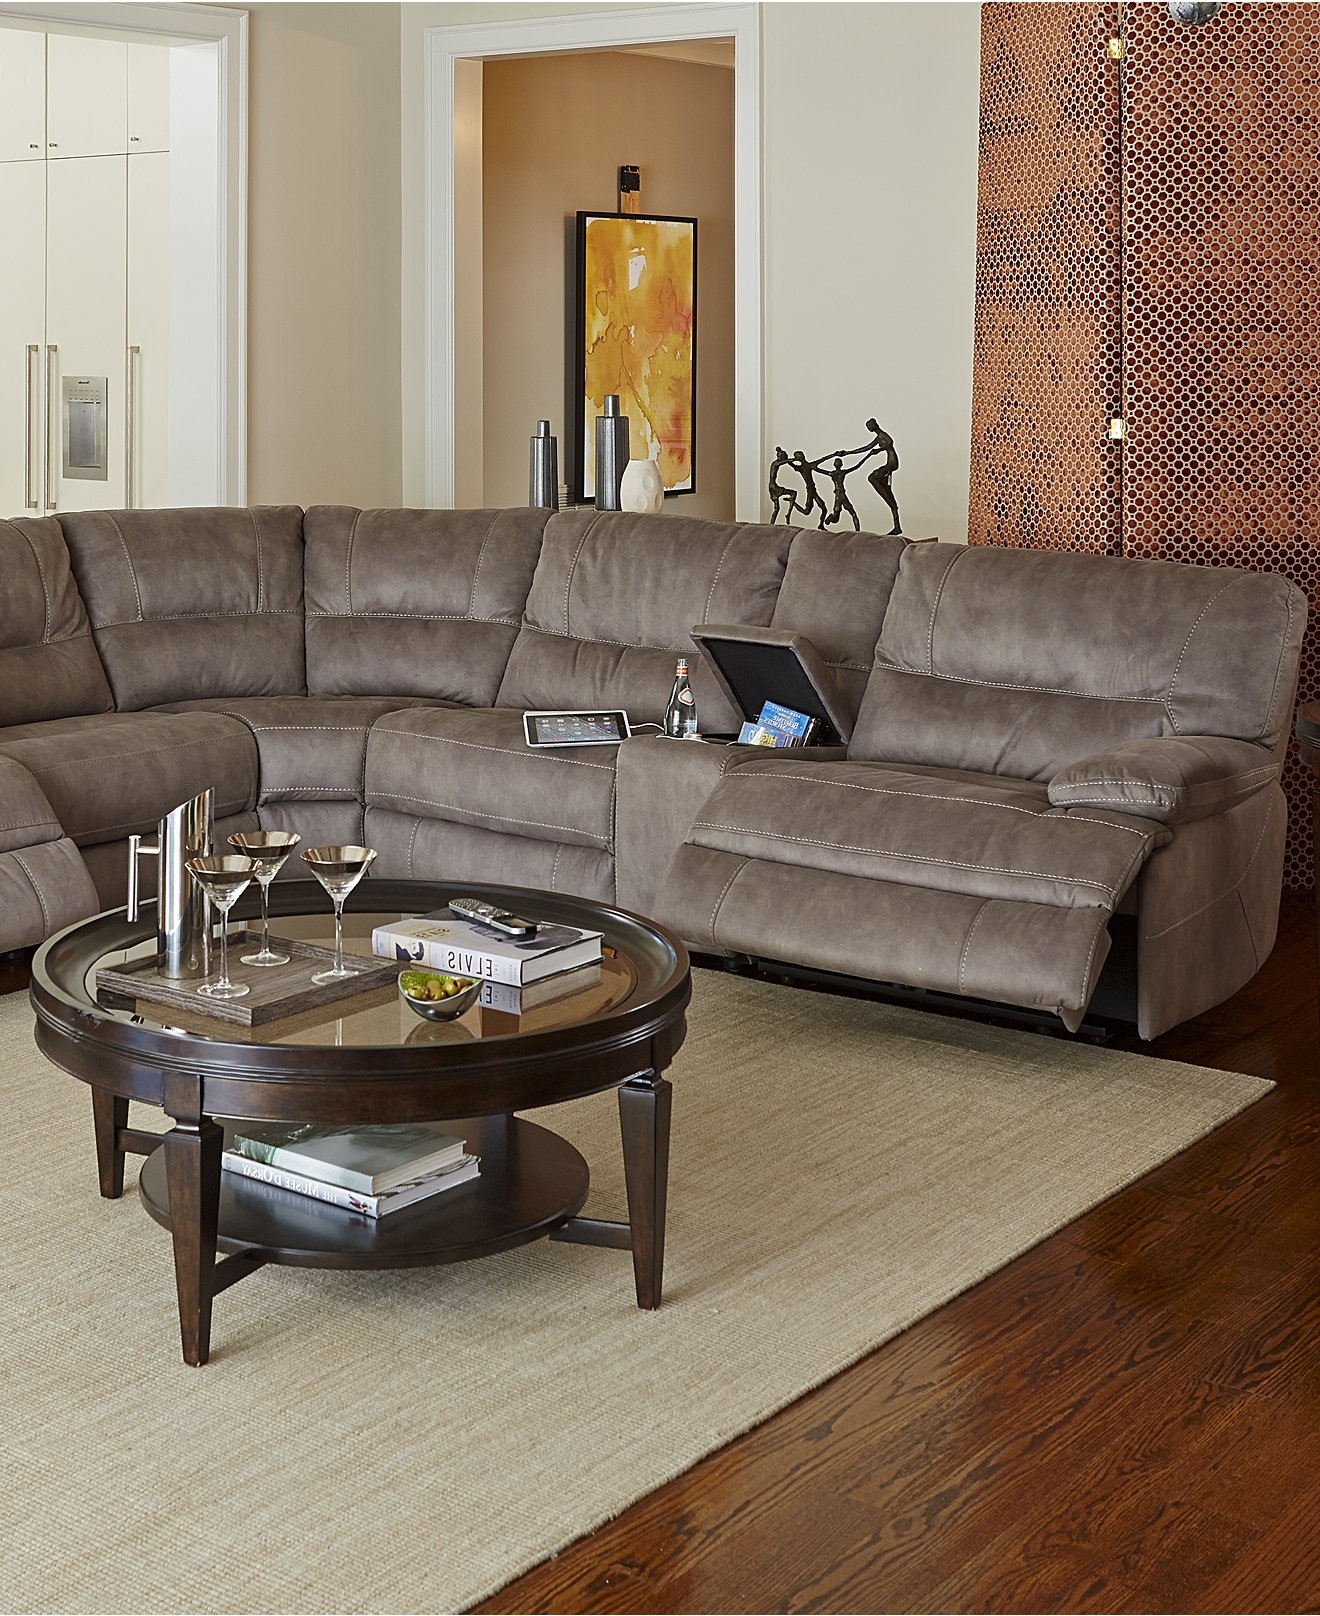 Newest Elliot Fabric Microfiber Sectional Sofa 3 Piece Microfiber Intended For Macys Leather Sectional Sofas (View 13 of 20)